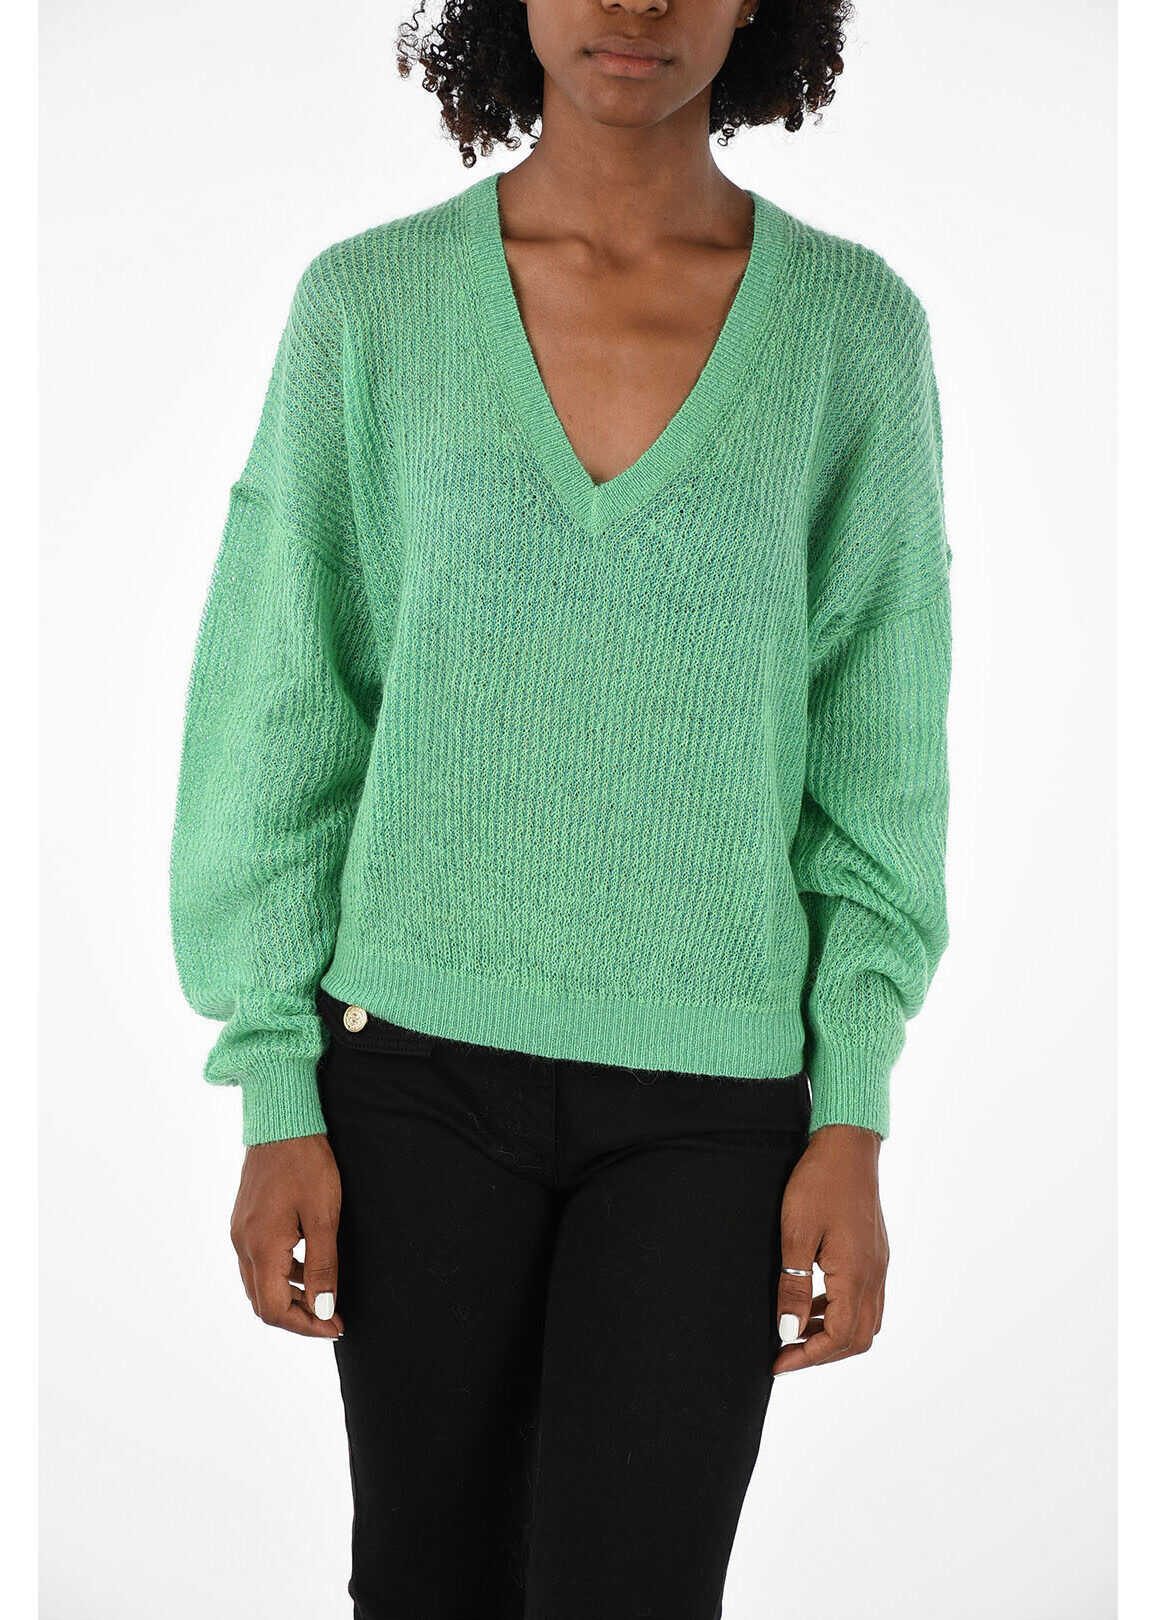 Burberry ribbed Pullover GREEN